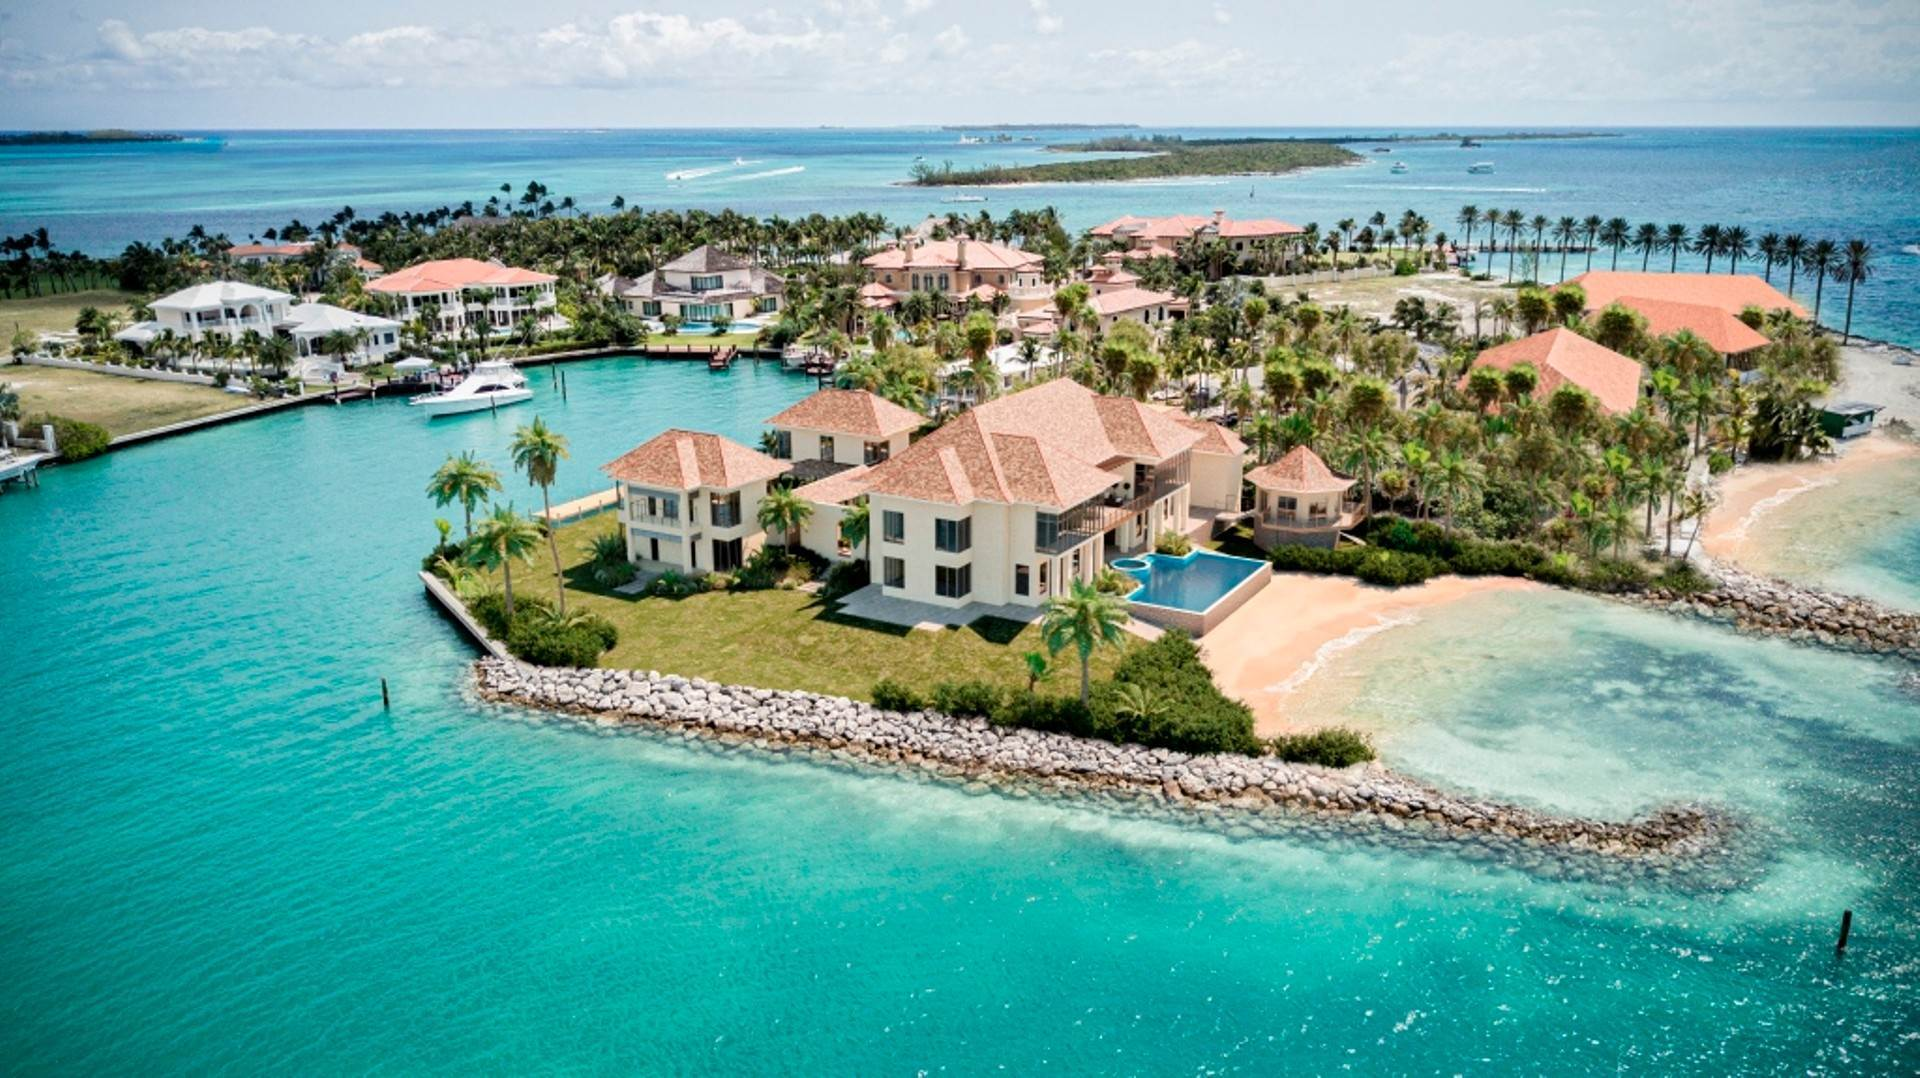 Land for Sale at Peninsula Lot, Ocean Club Estates, Paradise Island - MLS 43903 Ocean Club Estates, Paradise Island, Nassau And Paradise Island Bahamas